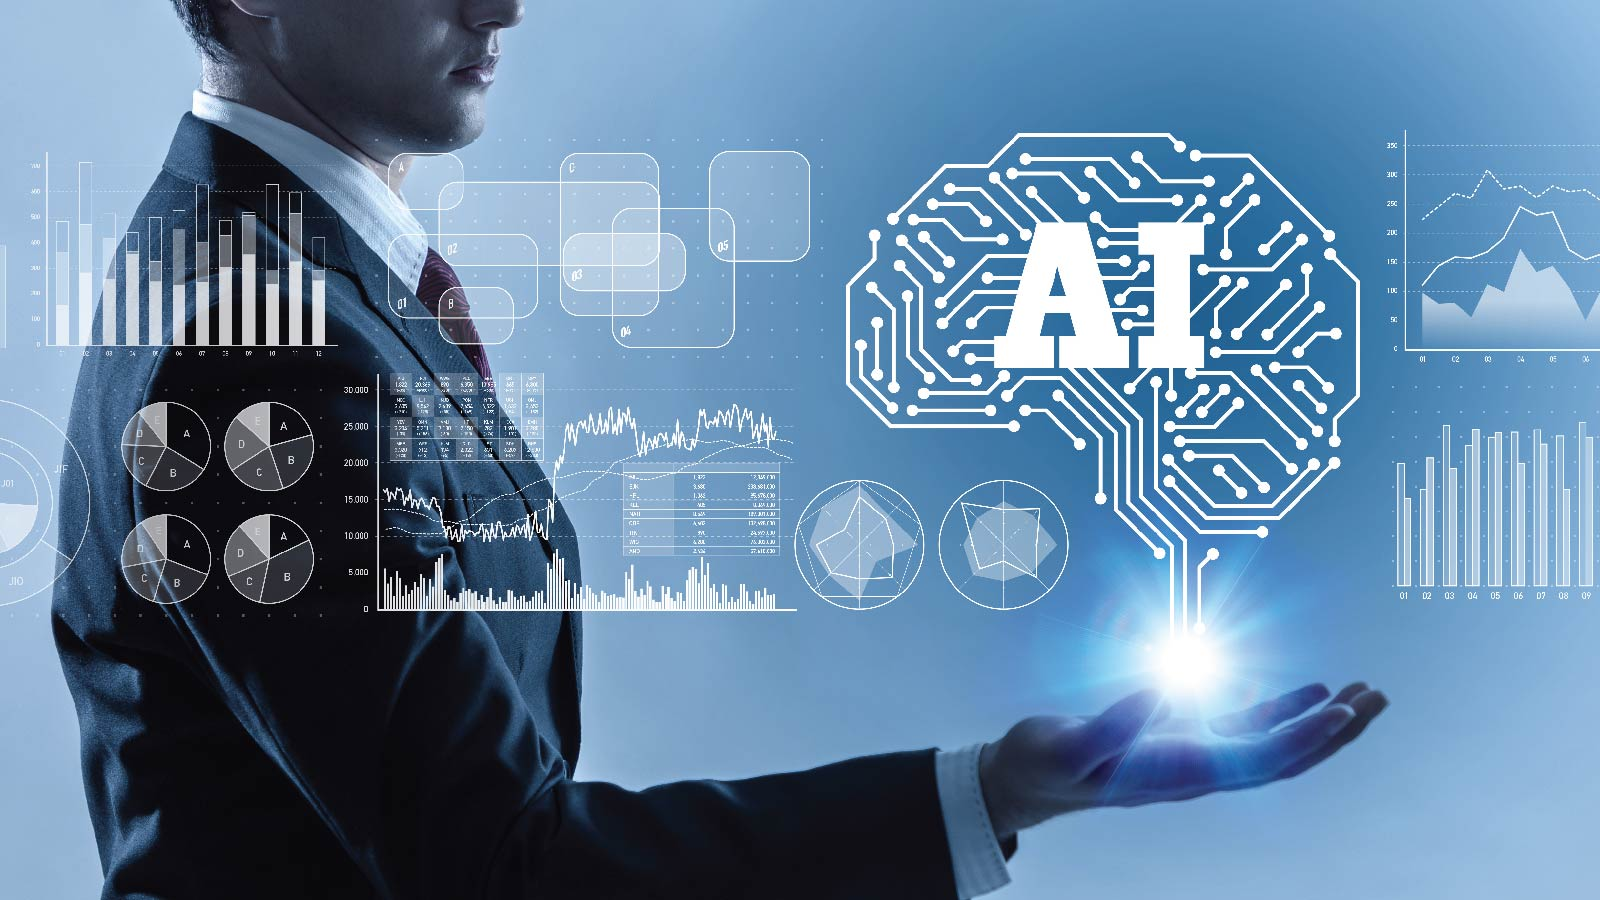 Factors Responsible for Failing the AI Strategy